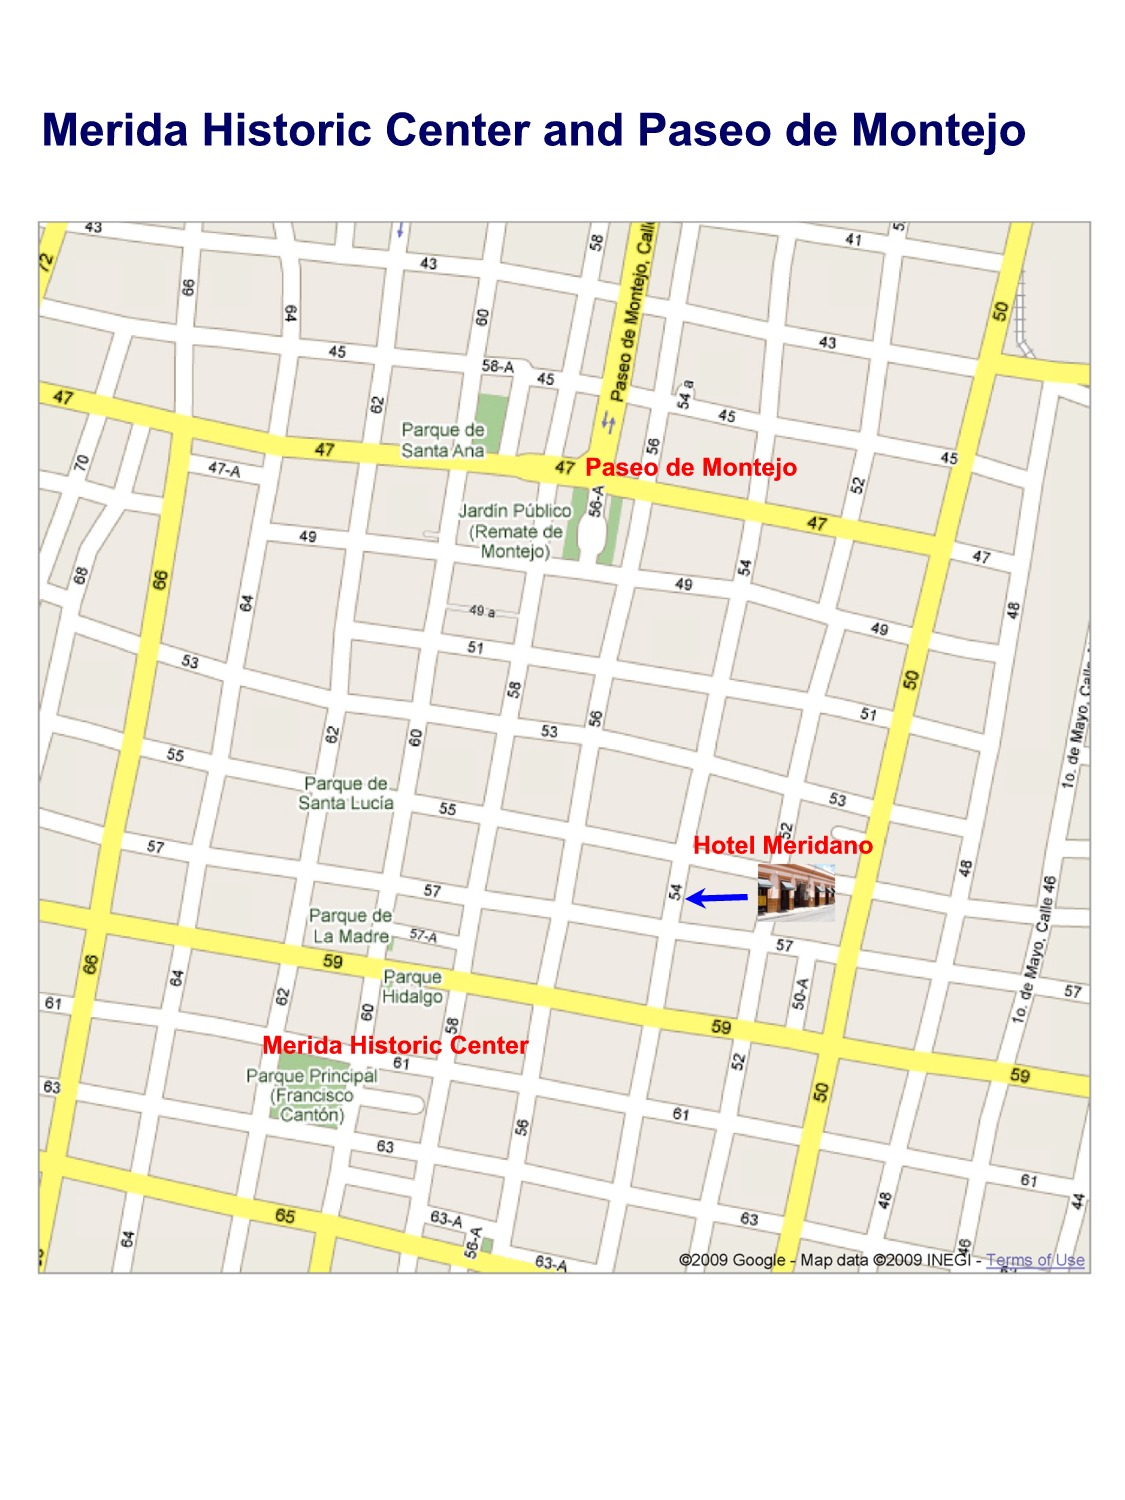 Hotel Meridano historic center Paseo de Montejo directions large map